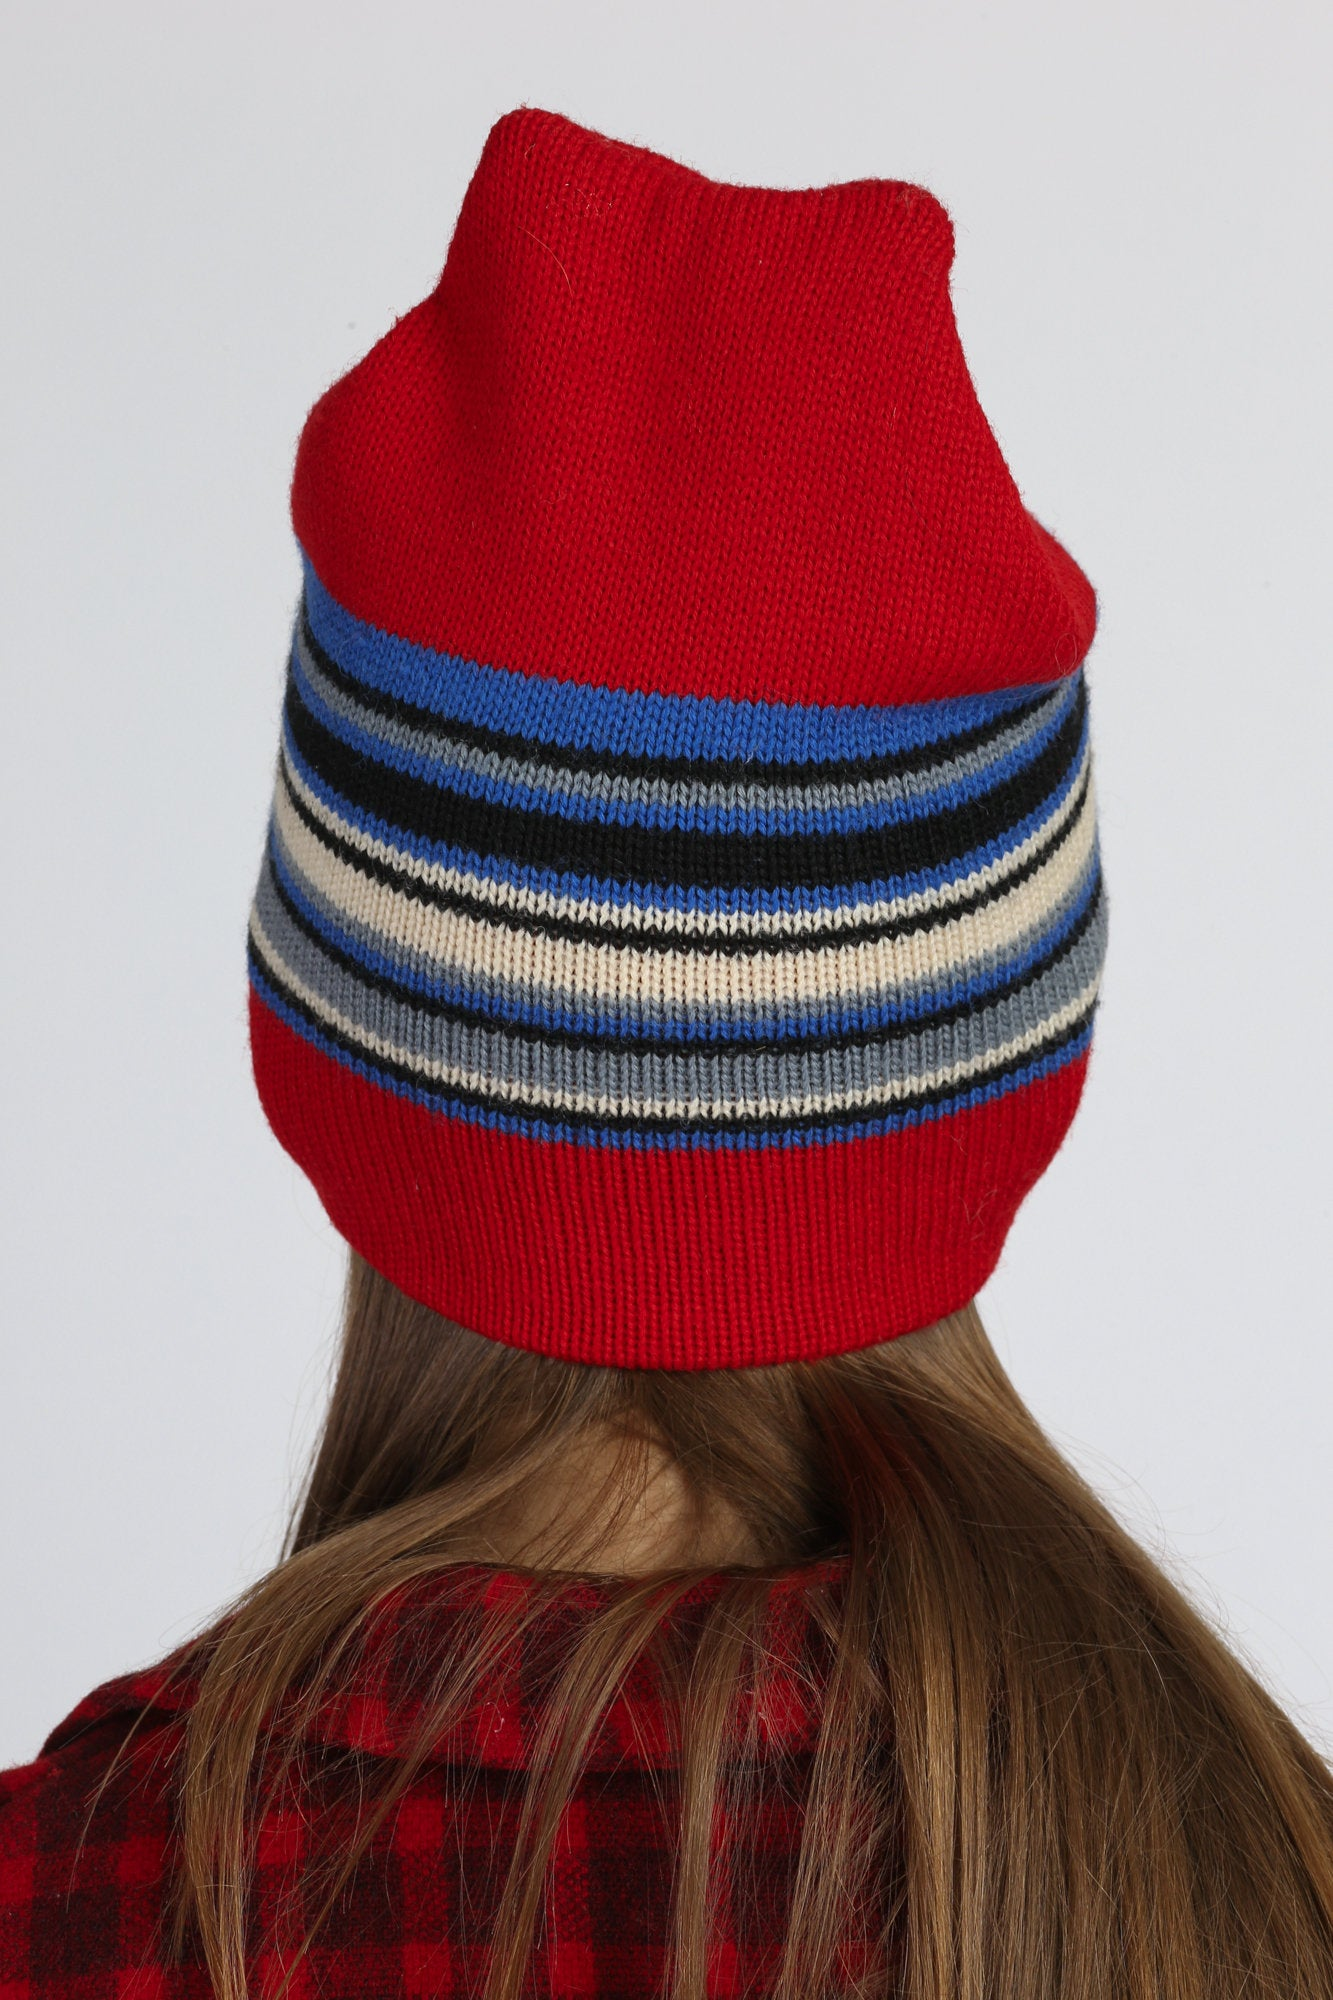 70s Red Striped Wool Knit Winter Beanie Hat - Extra Small